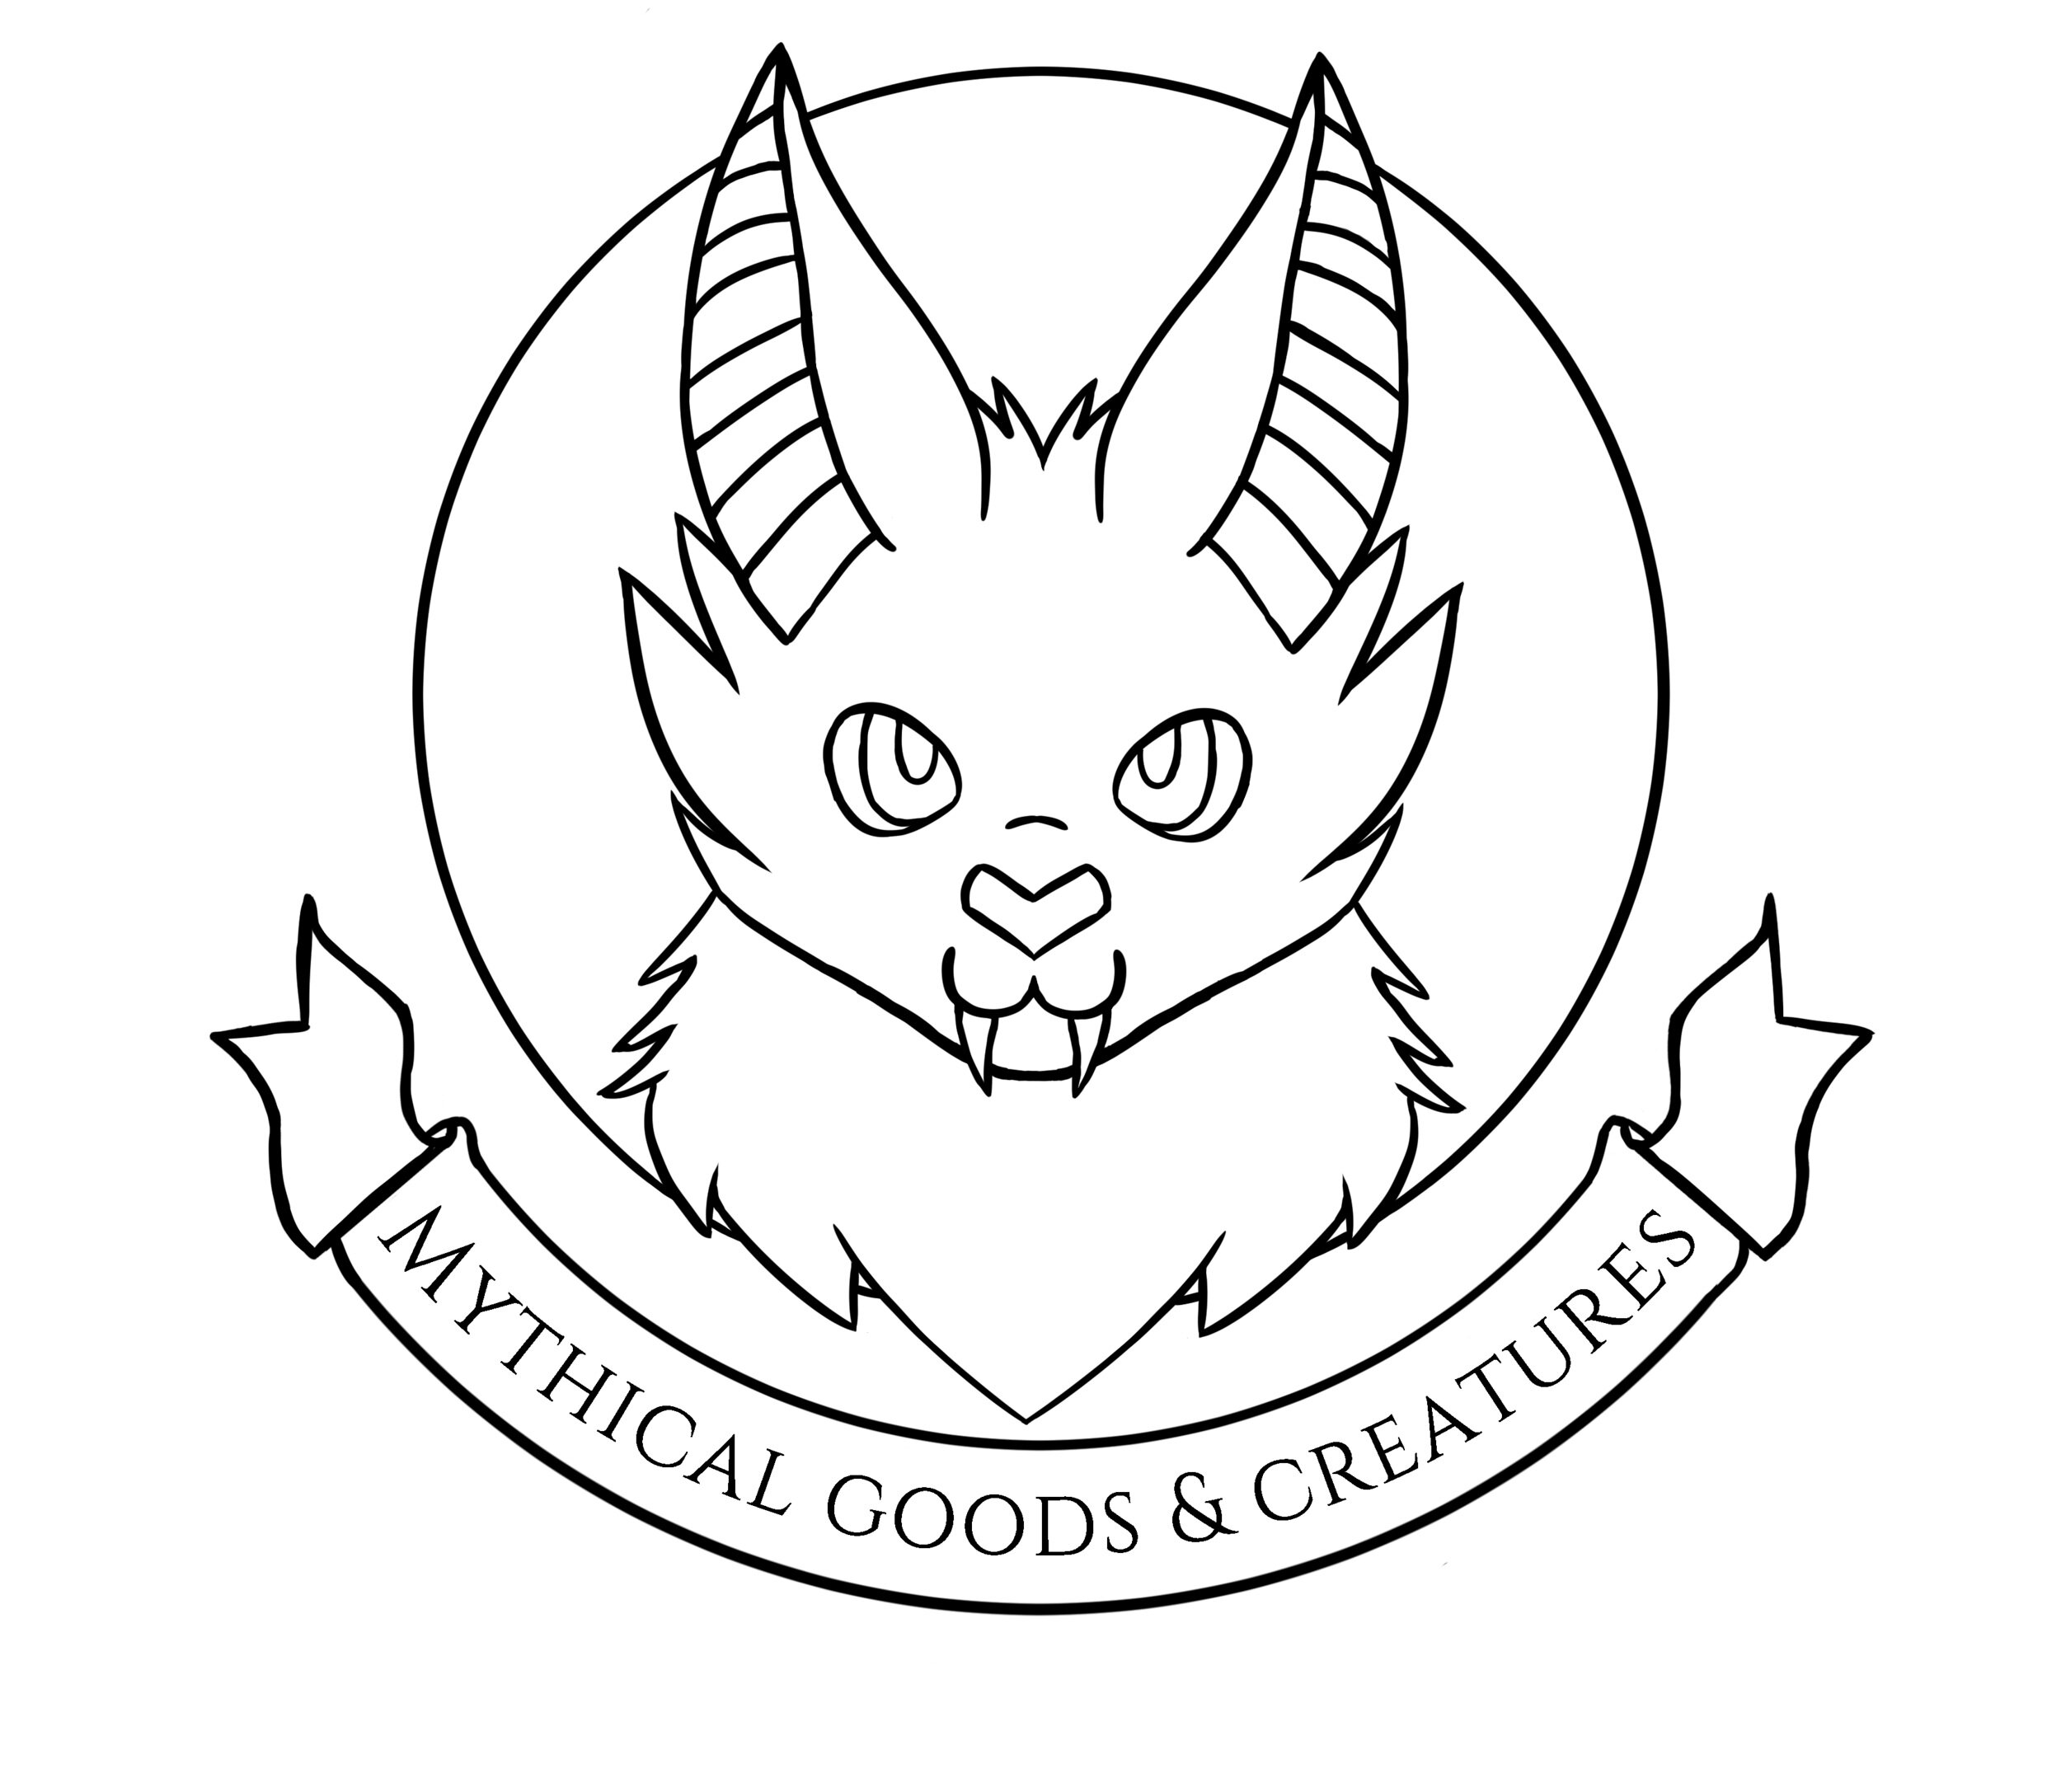 Mythical Goods & Creatures